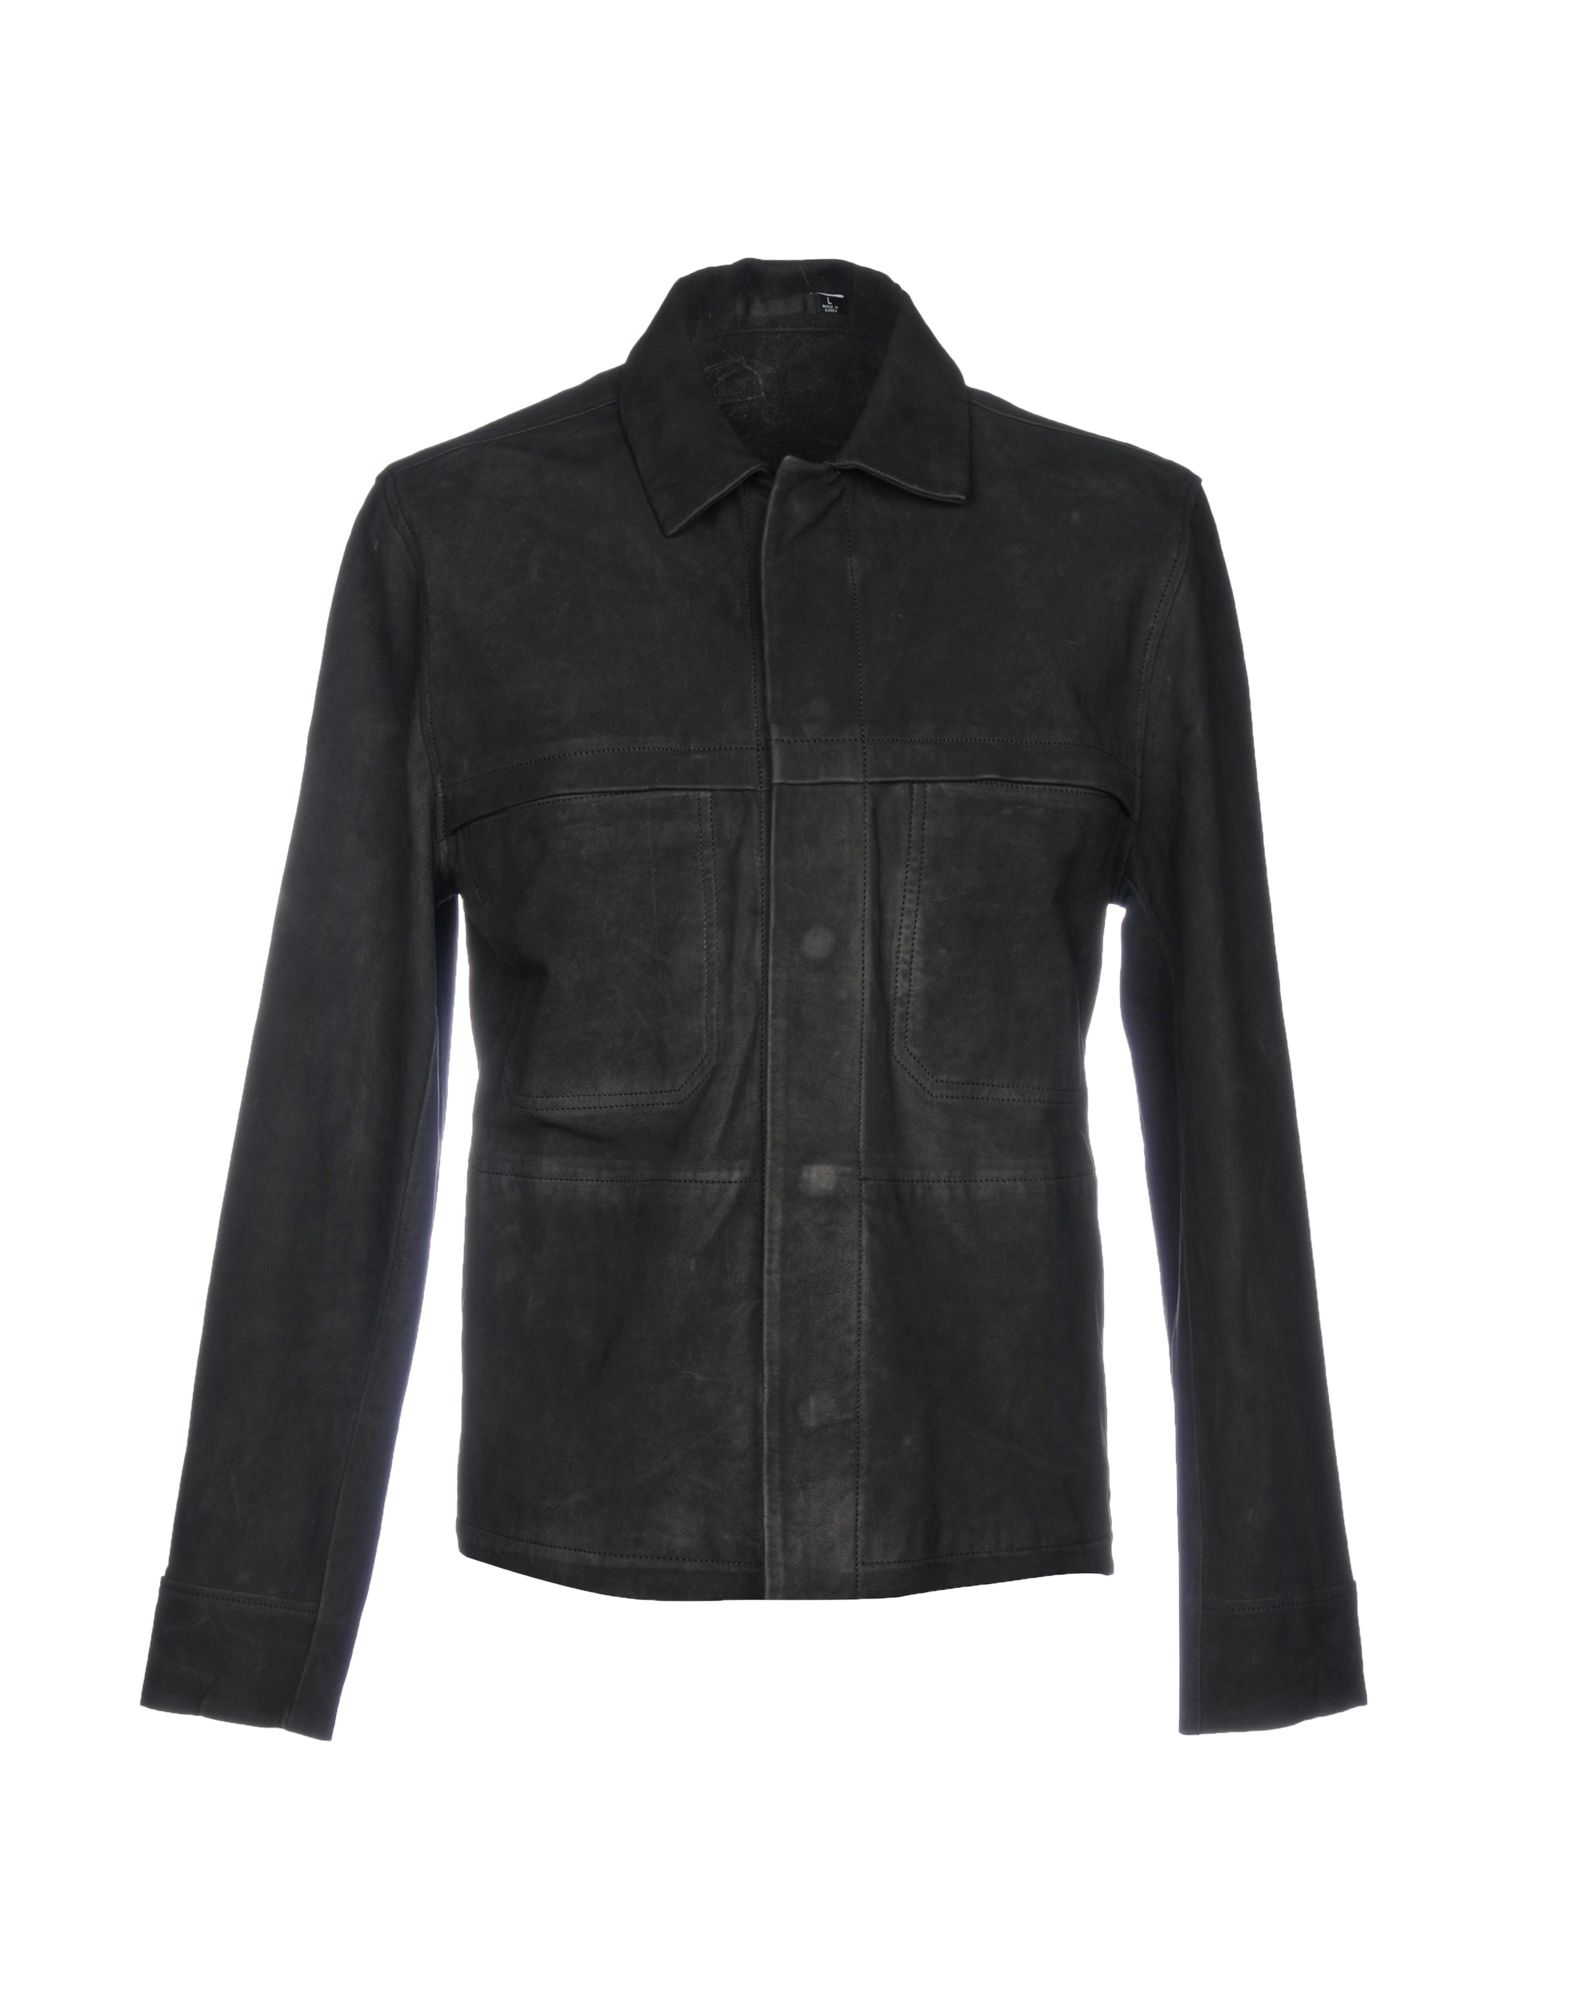 BLK DNM Leather Jacket in Black